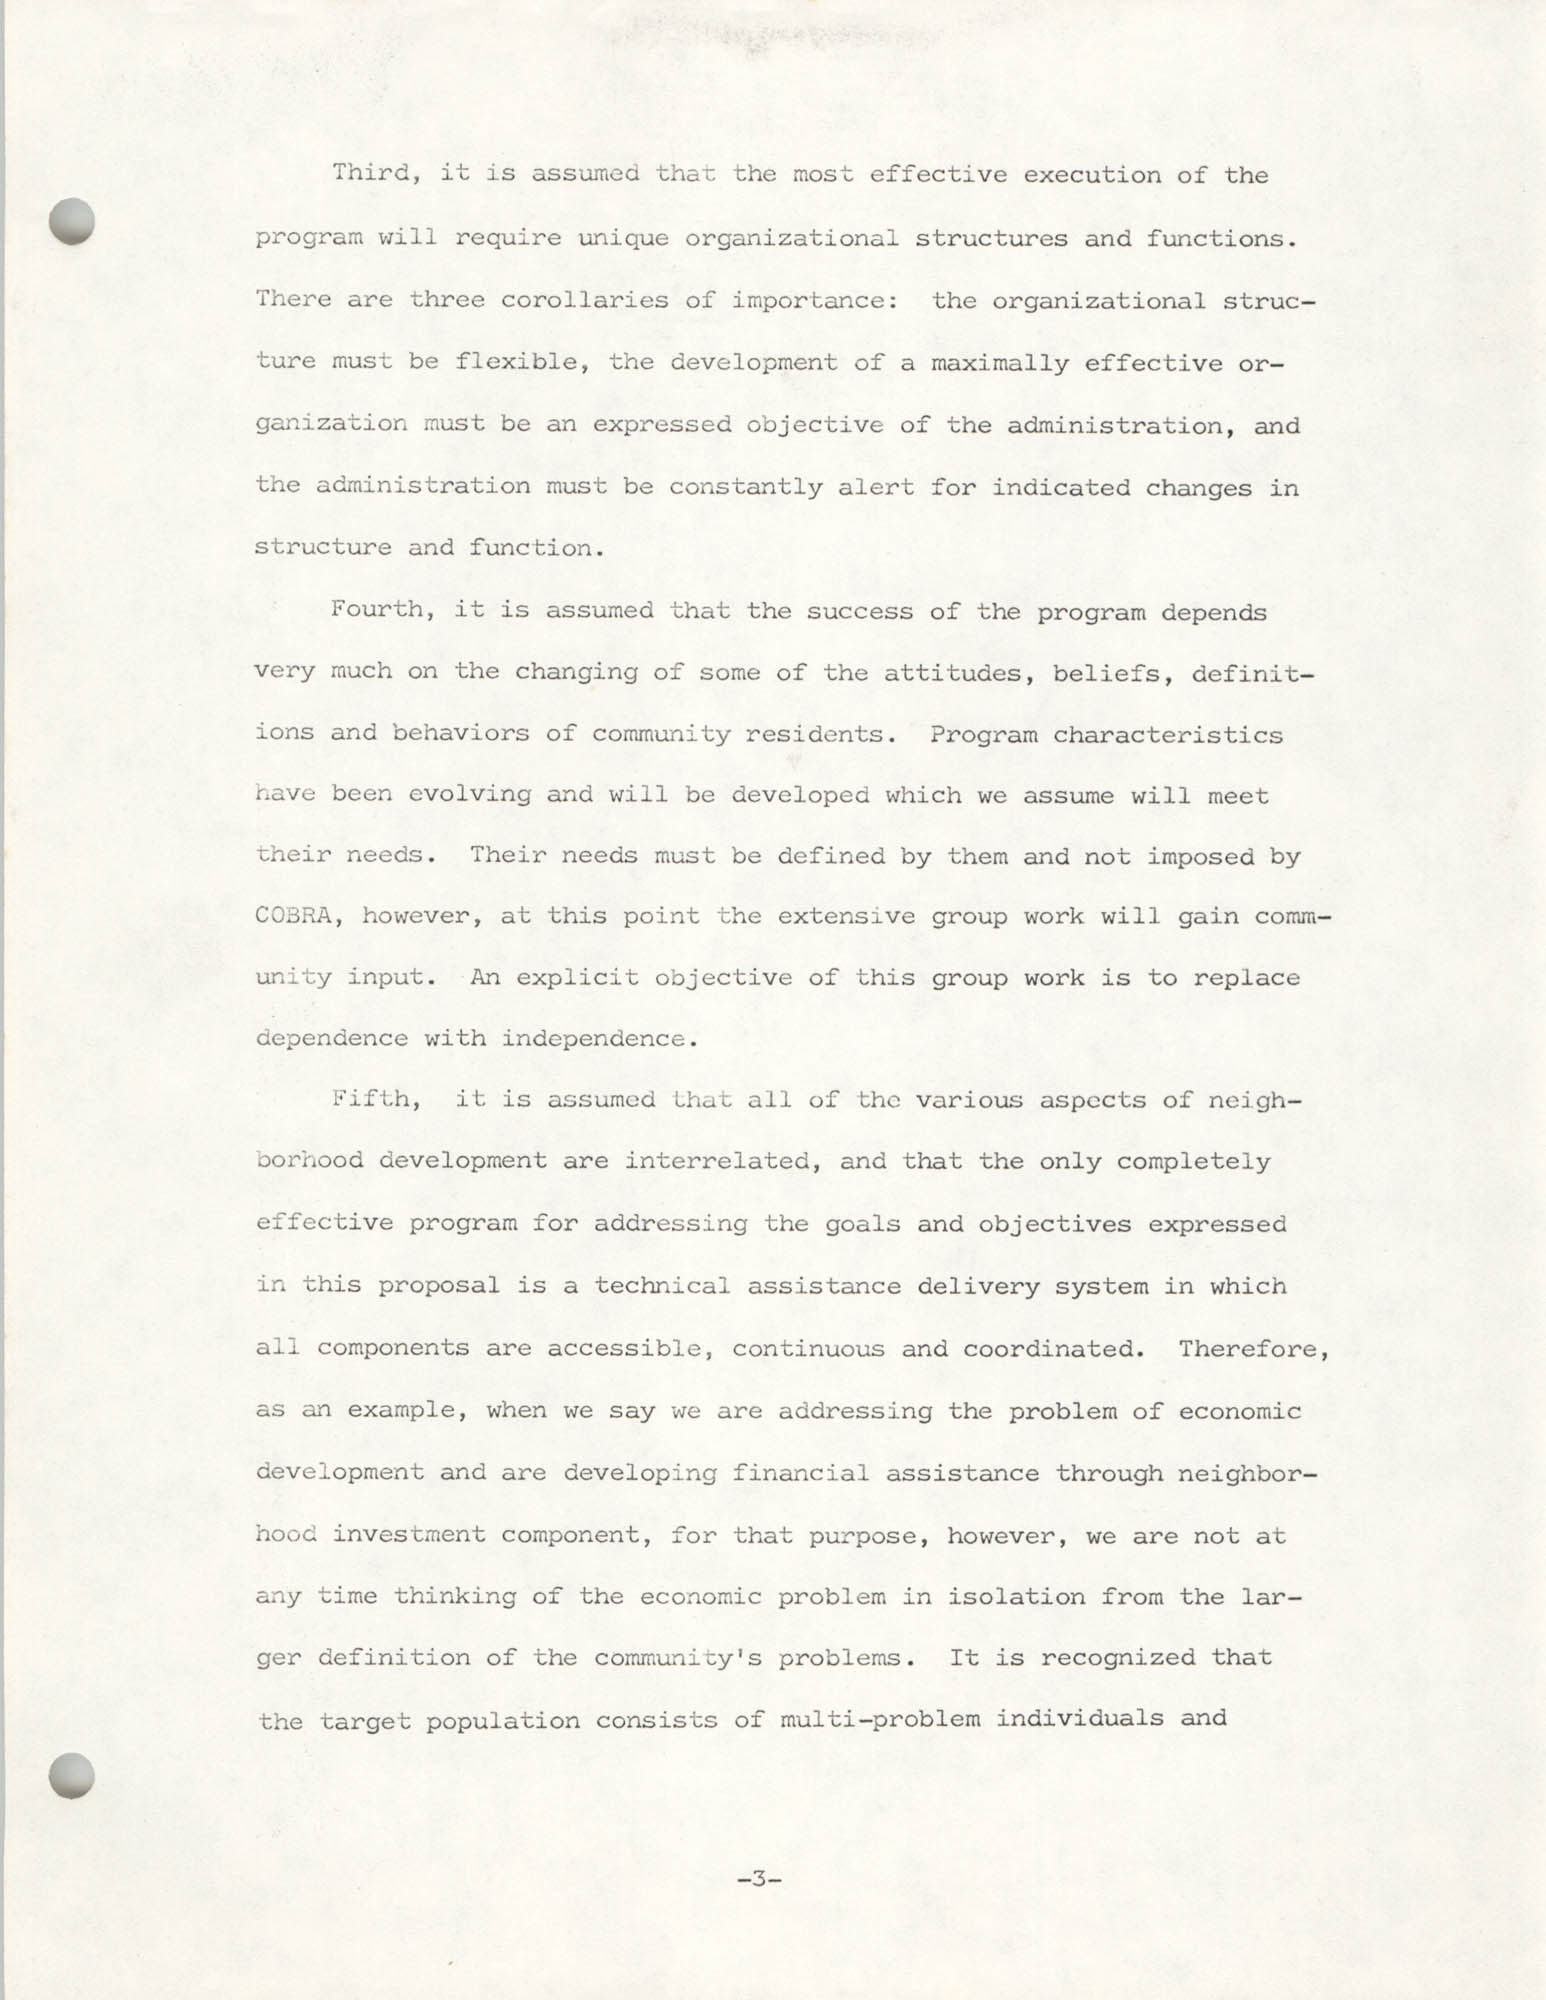 COBRA Philosophy of Technical Assistance, Page 3